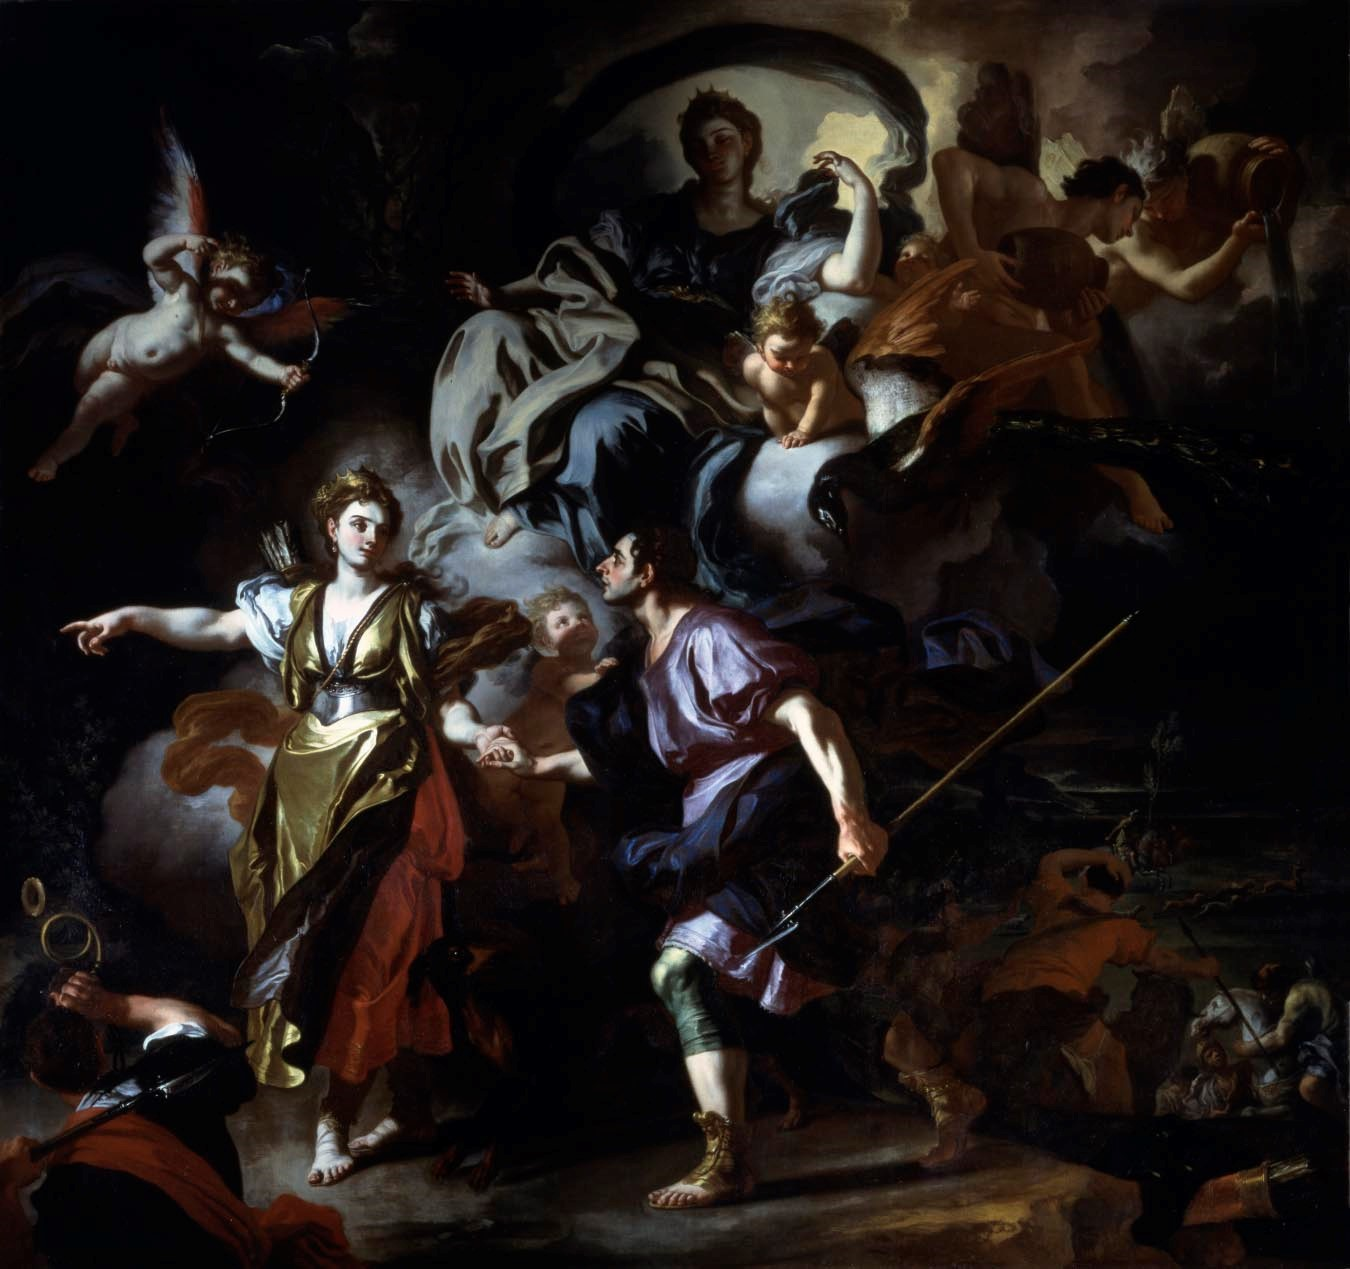 Solimena The Royal Hunt of Dido and Aeneas